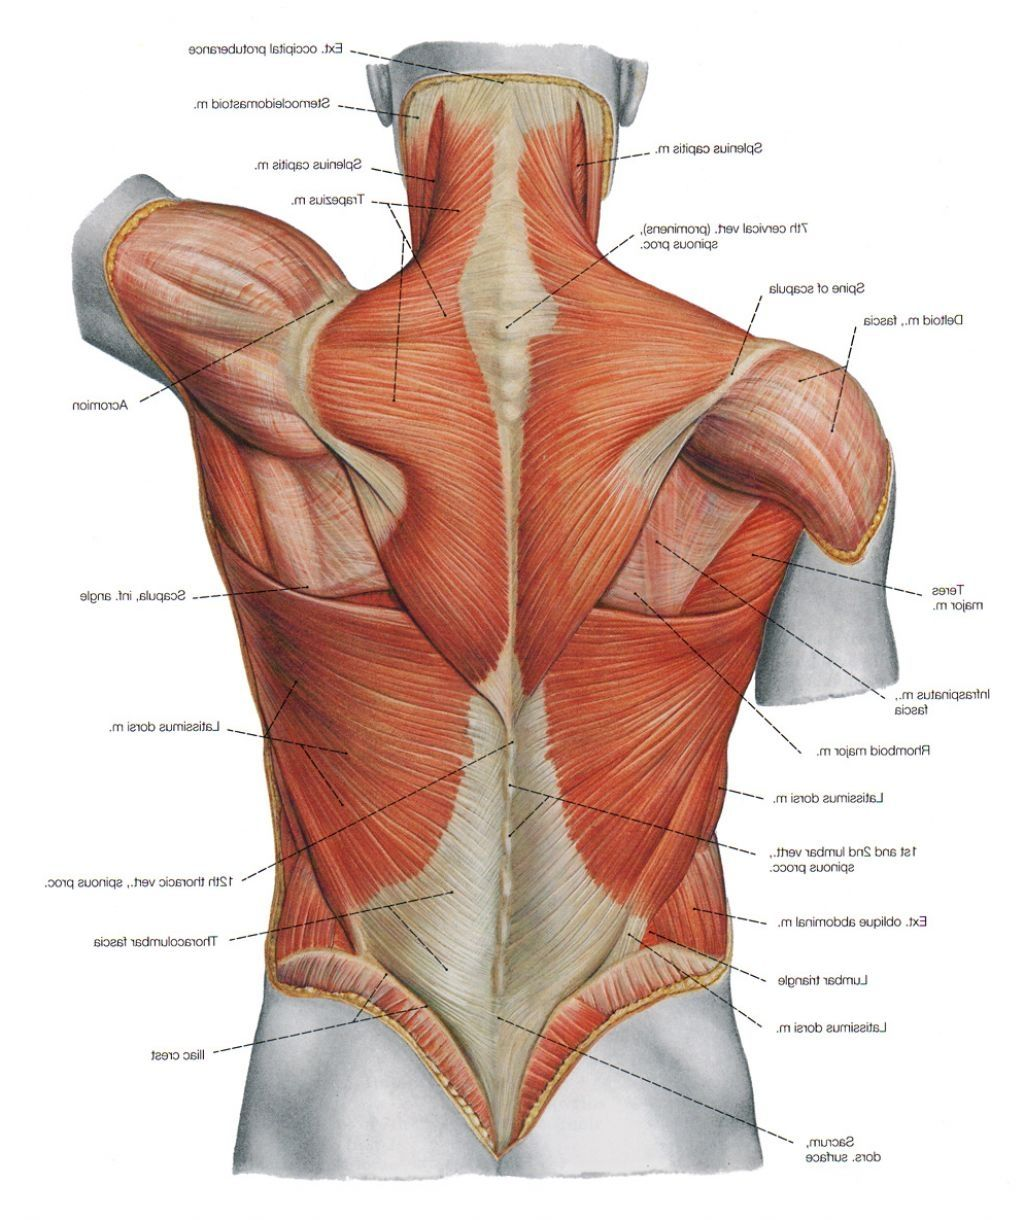 medium resolution of pin by reyman panganiban on anatomy in 2019 shoulder muscle back muscles diagram pain back diagram muscles